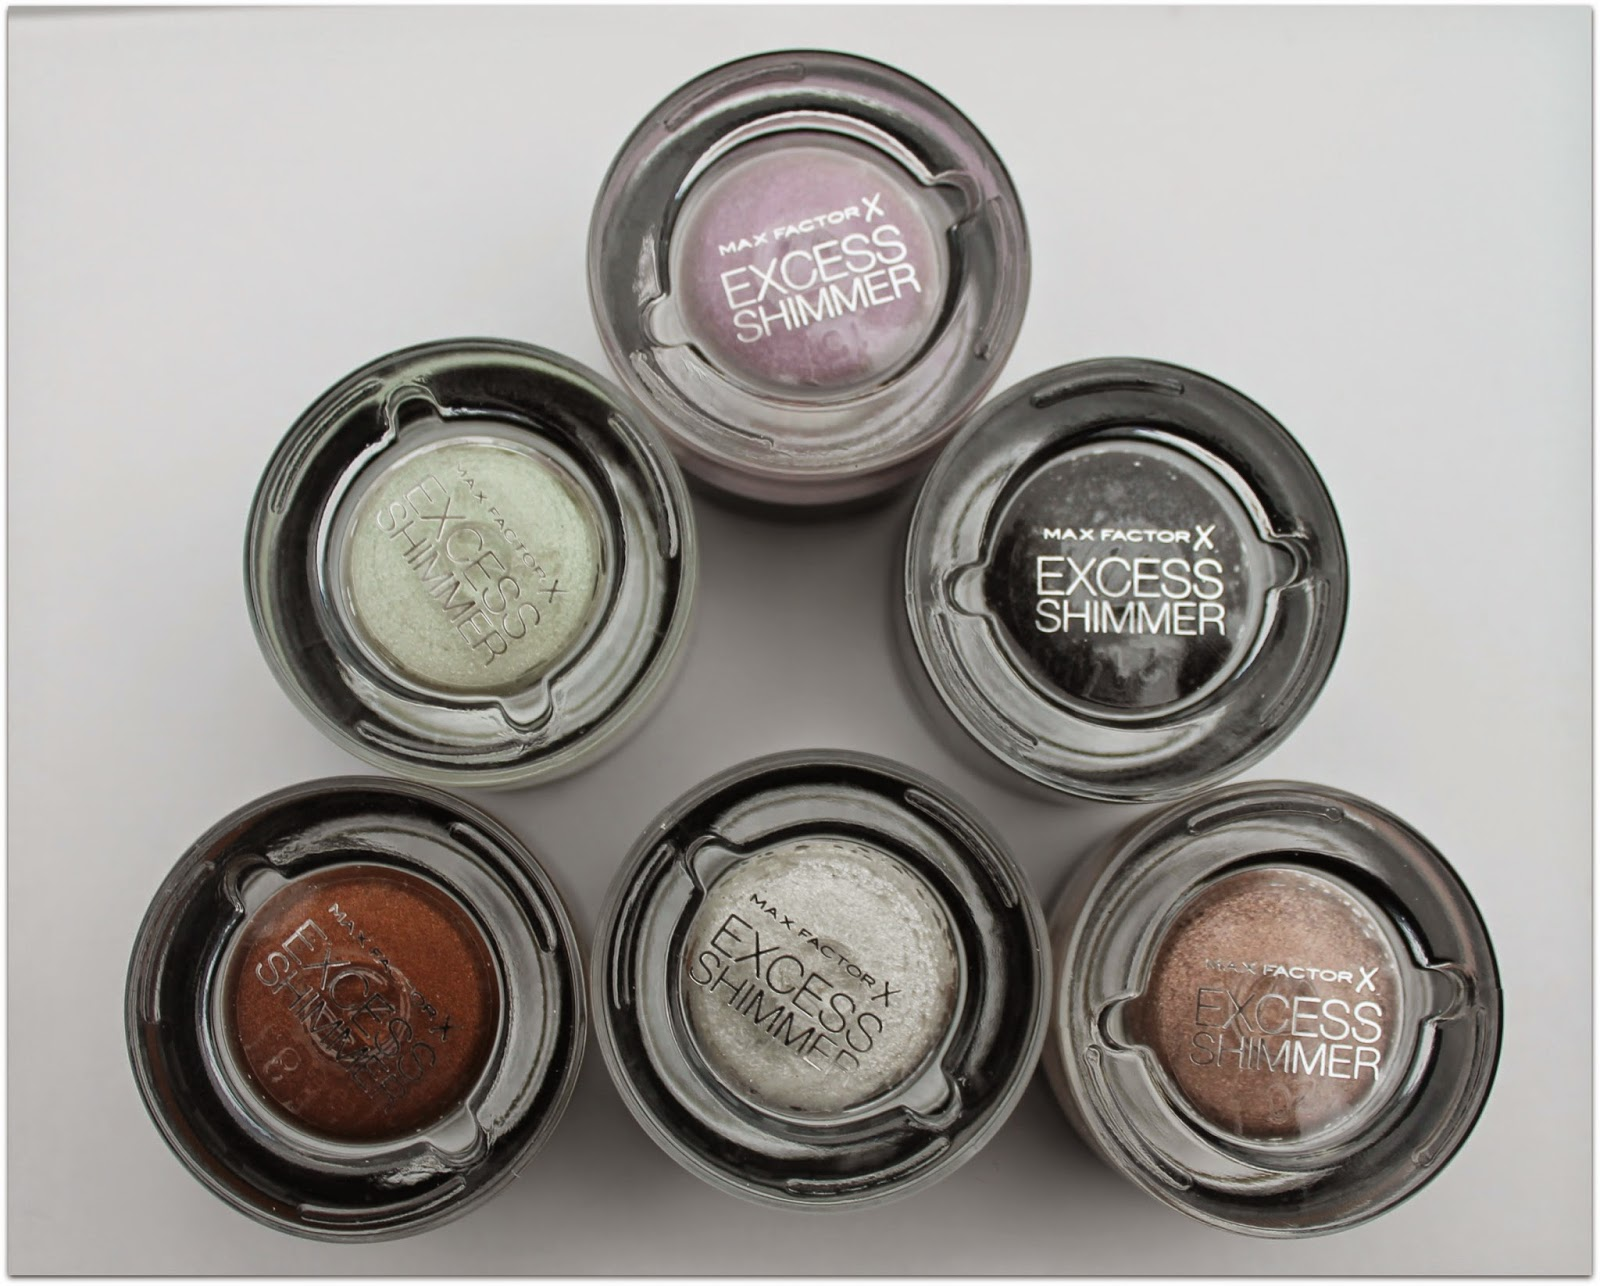 Max Factor Excess Shimmer Eyesdows